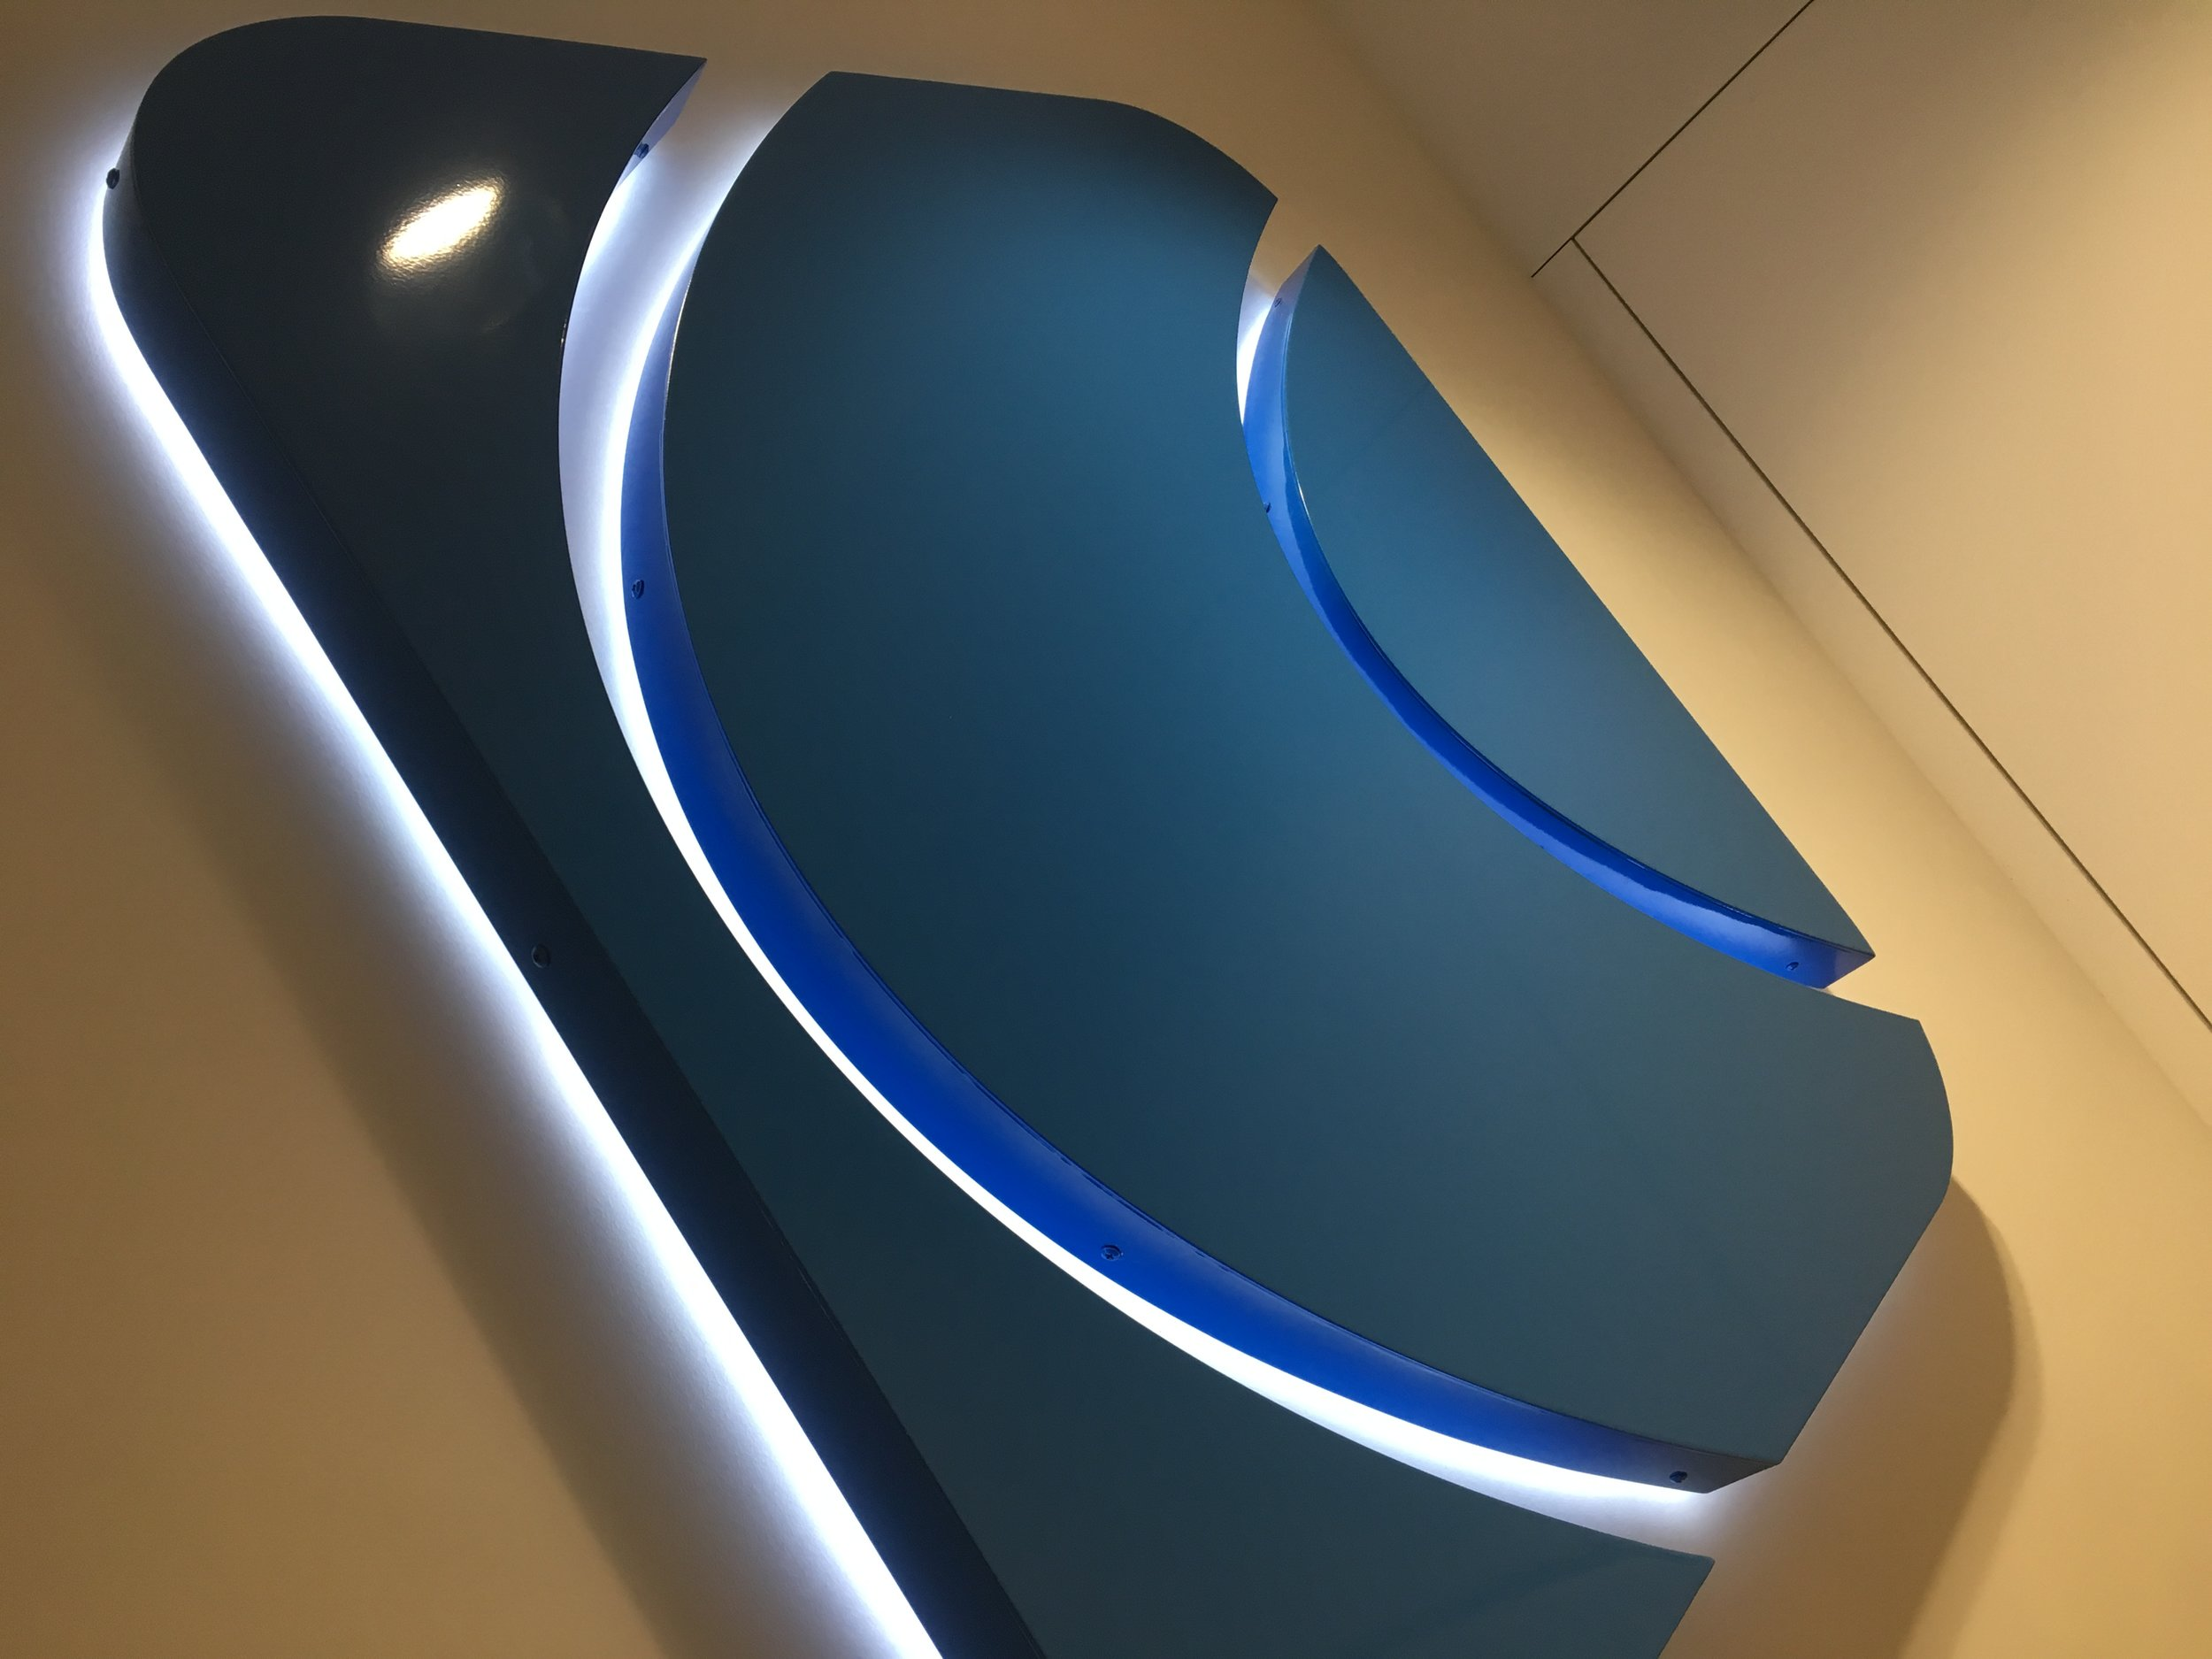 Built Up - Halo Illuminated Logo.   Built up, powder coated individual built up letters to create company logo shape, letters were supplied and installed with foam back trays and LED's to give a face free of fixings and halo illumination.